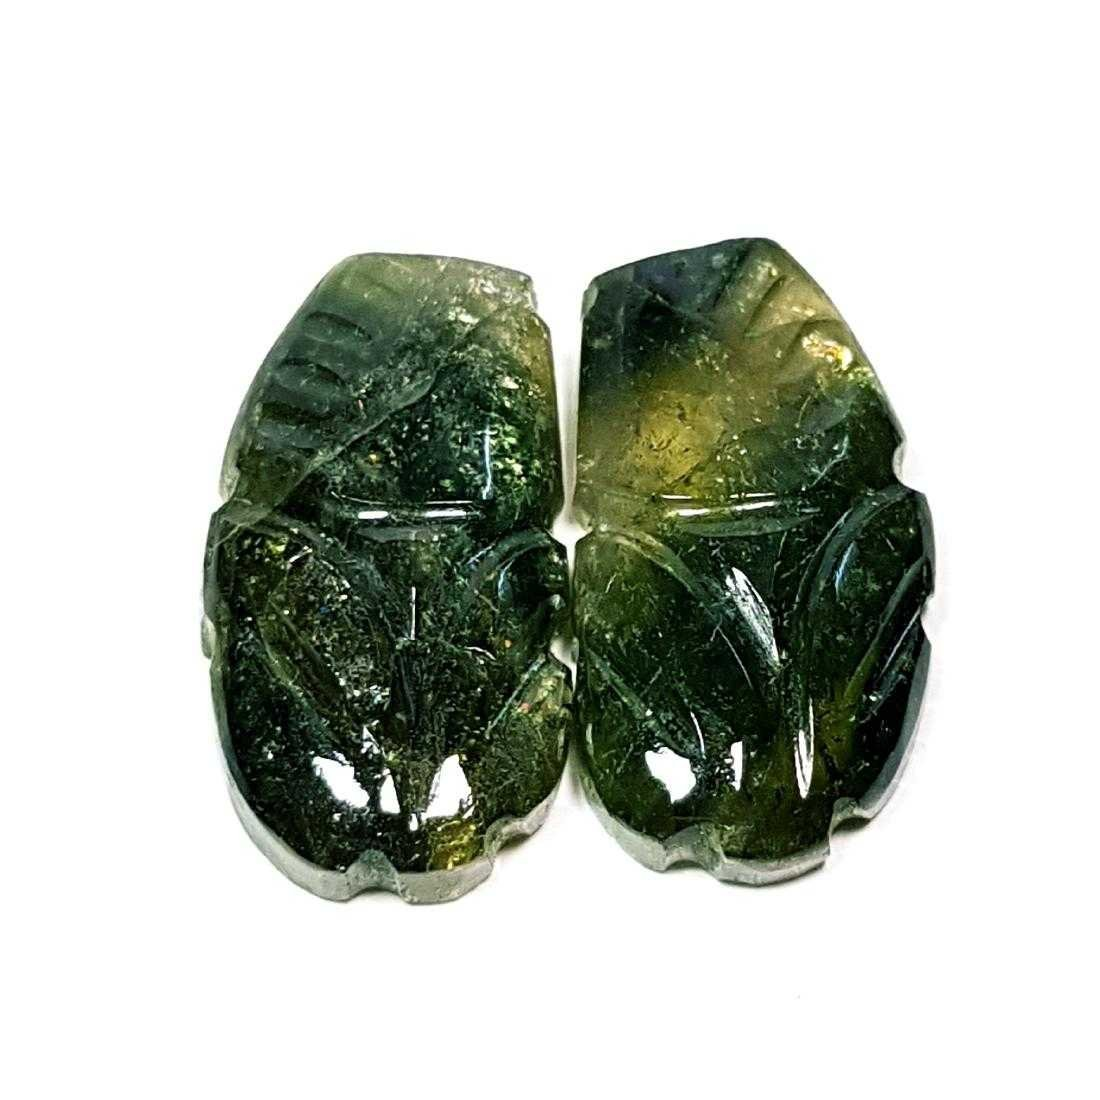 13.59 ct Pair of Bi Color Tourmaline Carving